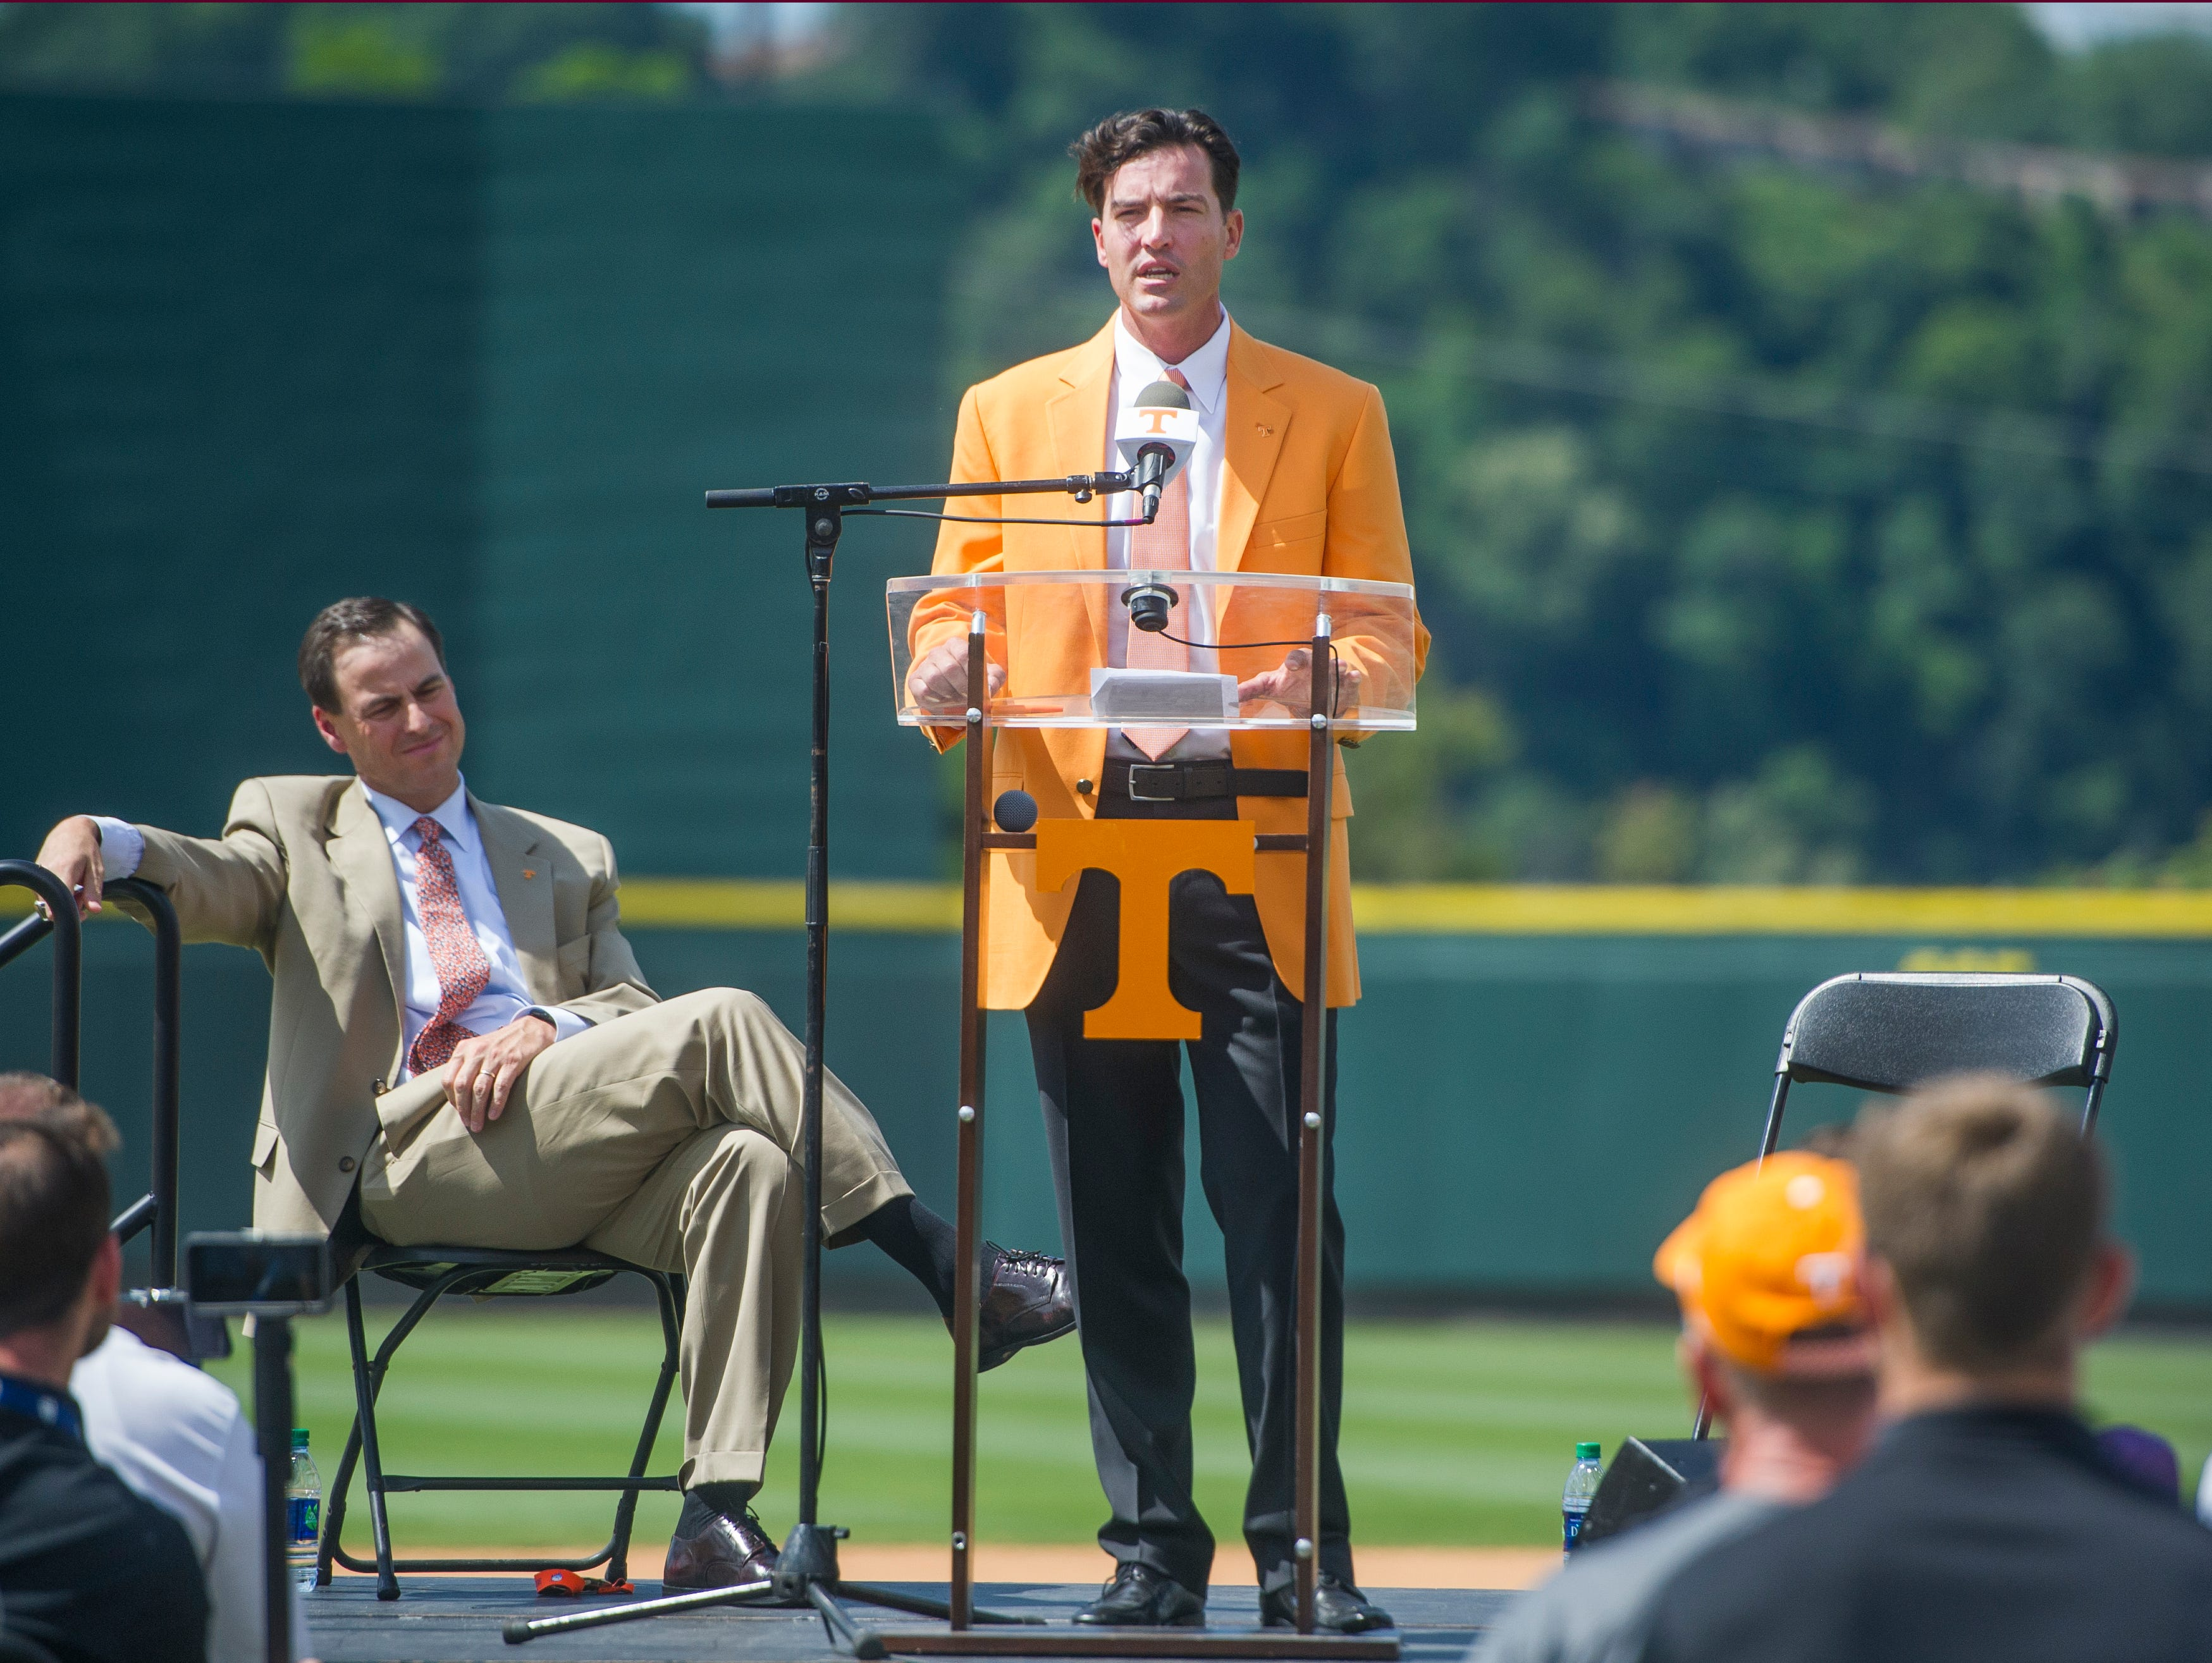 Tony Vitello, the new University of Tennessee baseball head coach, speaks at a press conference introducing him to the media, as John Currie, Tennessee vice chancellor and director of athletics, sits to his left at Lindsey Nelson Stadium on Friday June 9, 2017.